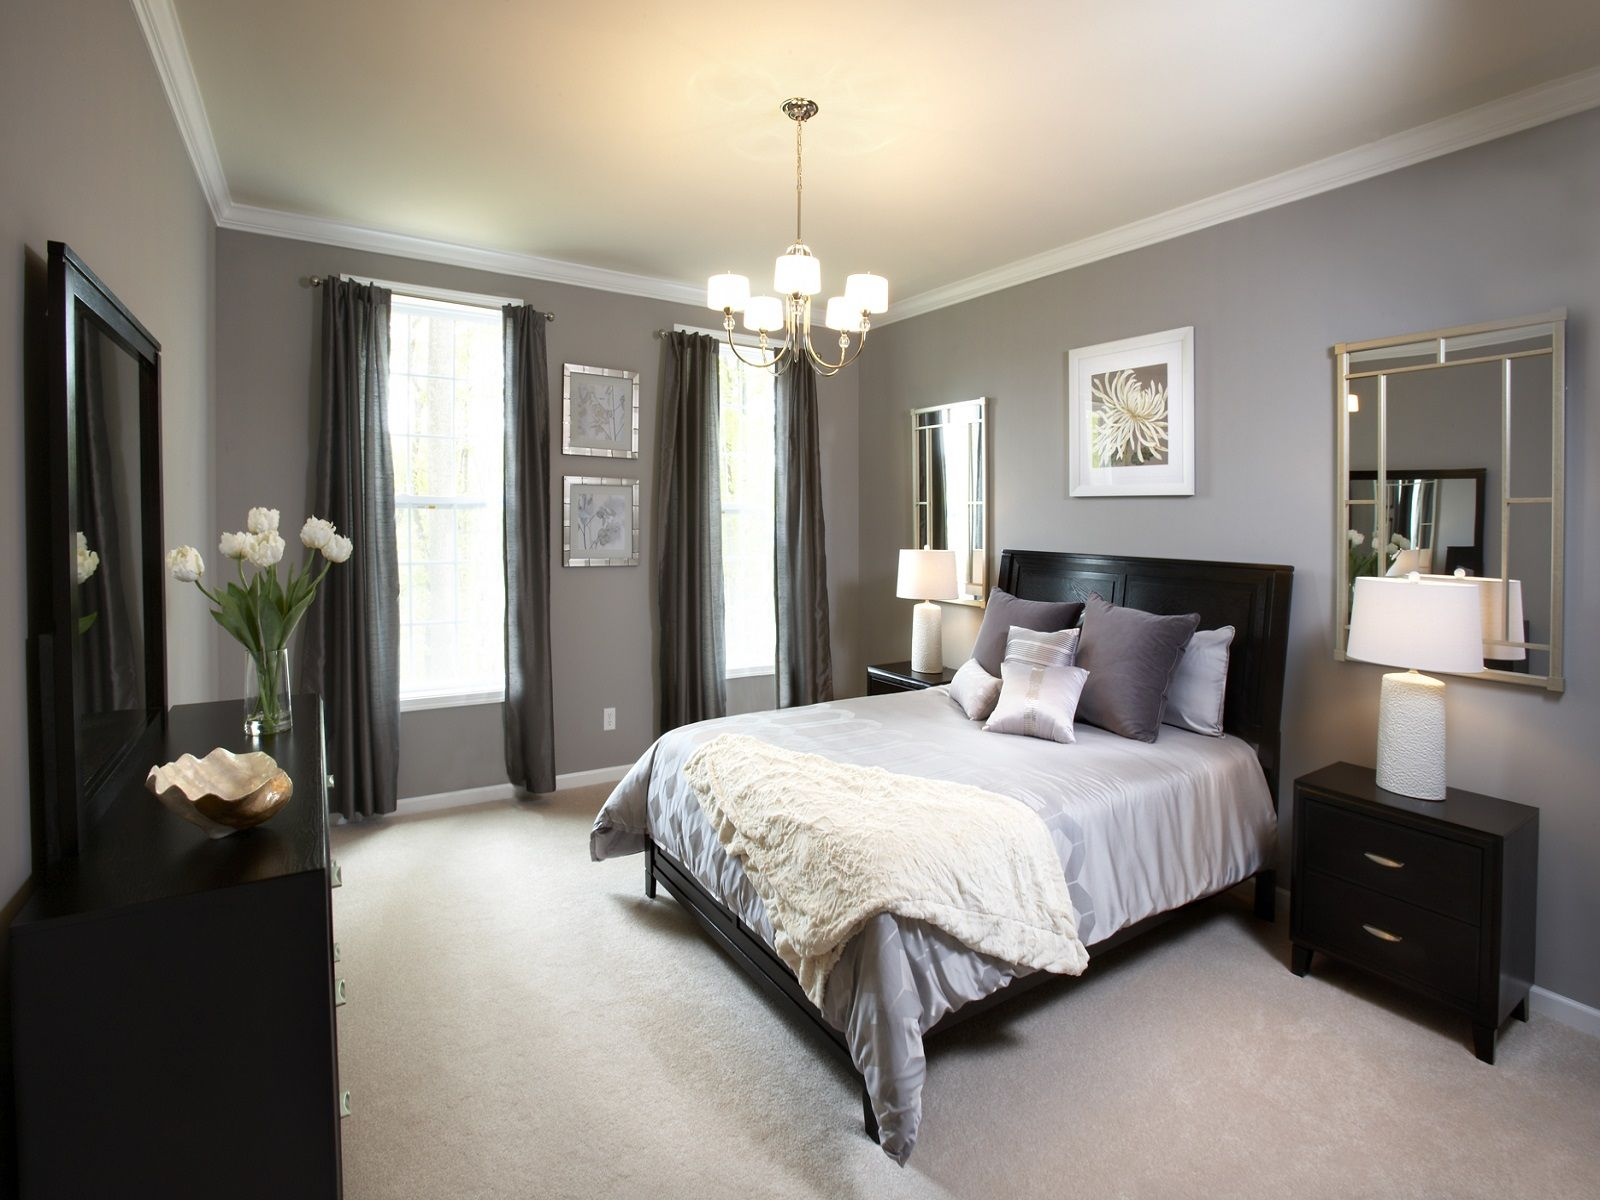 Black and white and grey bedrooms - 17 Best Ideas About Grey Bedroom Furniture On Pinterest Grey Furniture Inspiration Grey Wall Mirrors And Refinished Bedroom Furniture